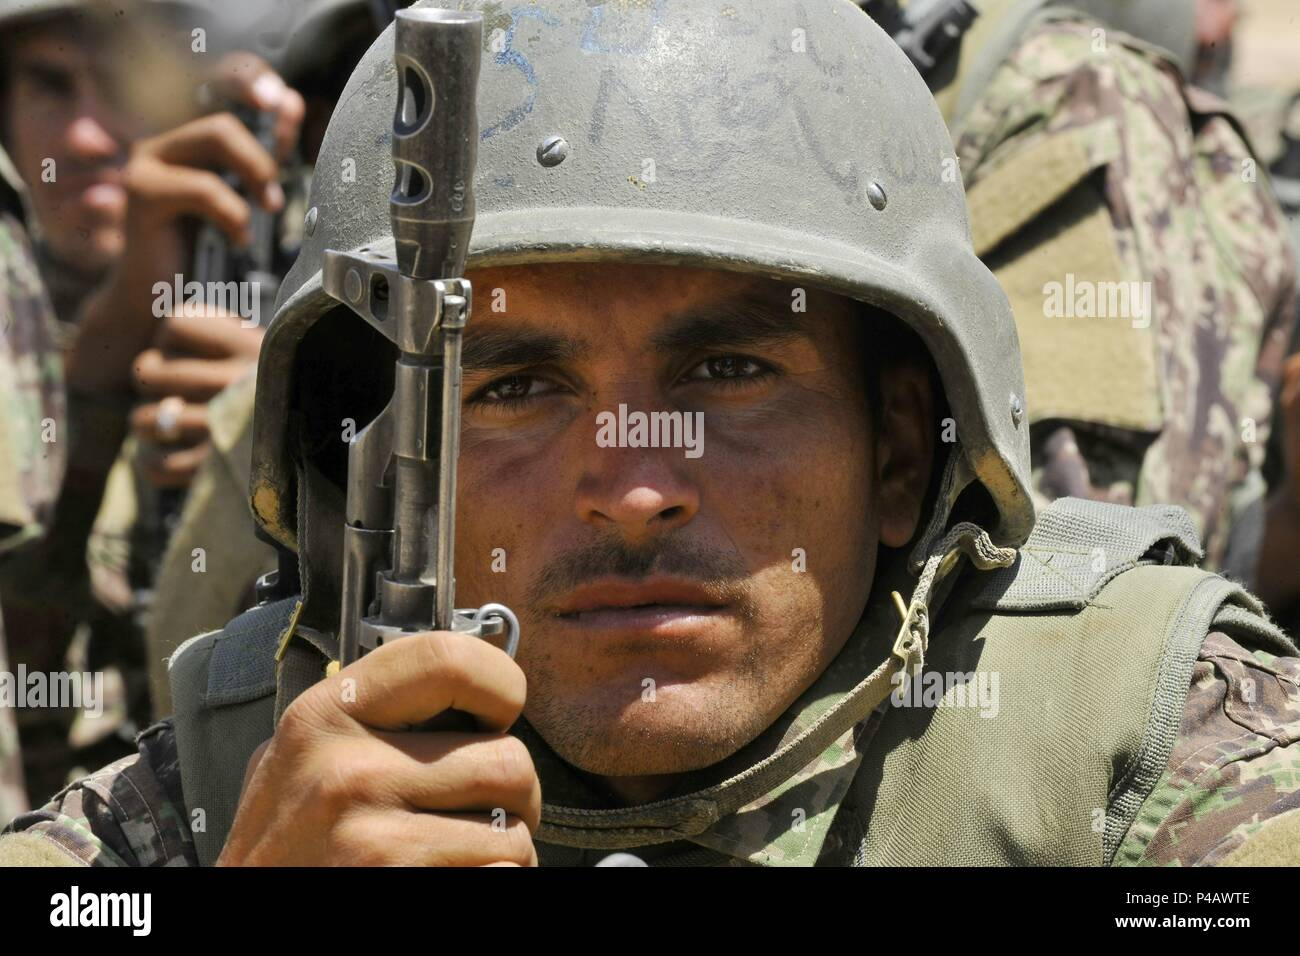 An Afghan National Army-Territorial Force member watches security demonstrations during an exercise at the Kabul Military Training Center in Kabul, Afghanistan, June 11, 2018, June 11, 2018. Demonstrations consisted of security checkpoint procedures, medical evacuations, Improvised Explosive Device detection, and concealment. (U.S. Air Force photo by Tech. Sgt. Sharida Jackson). () - Stock Image